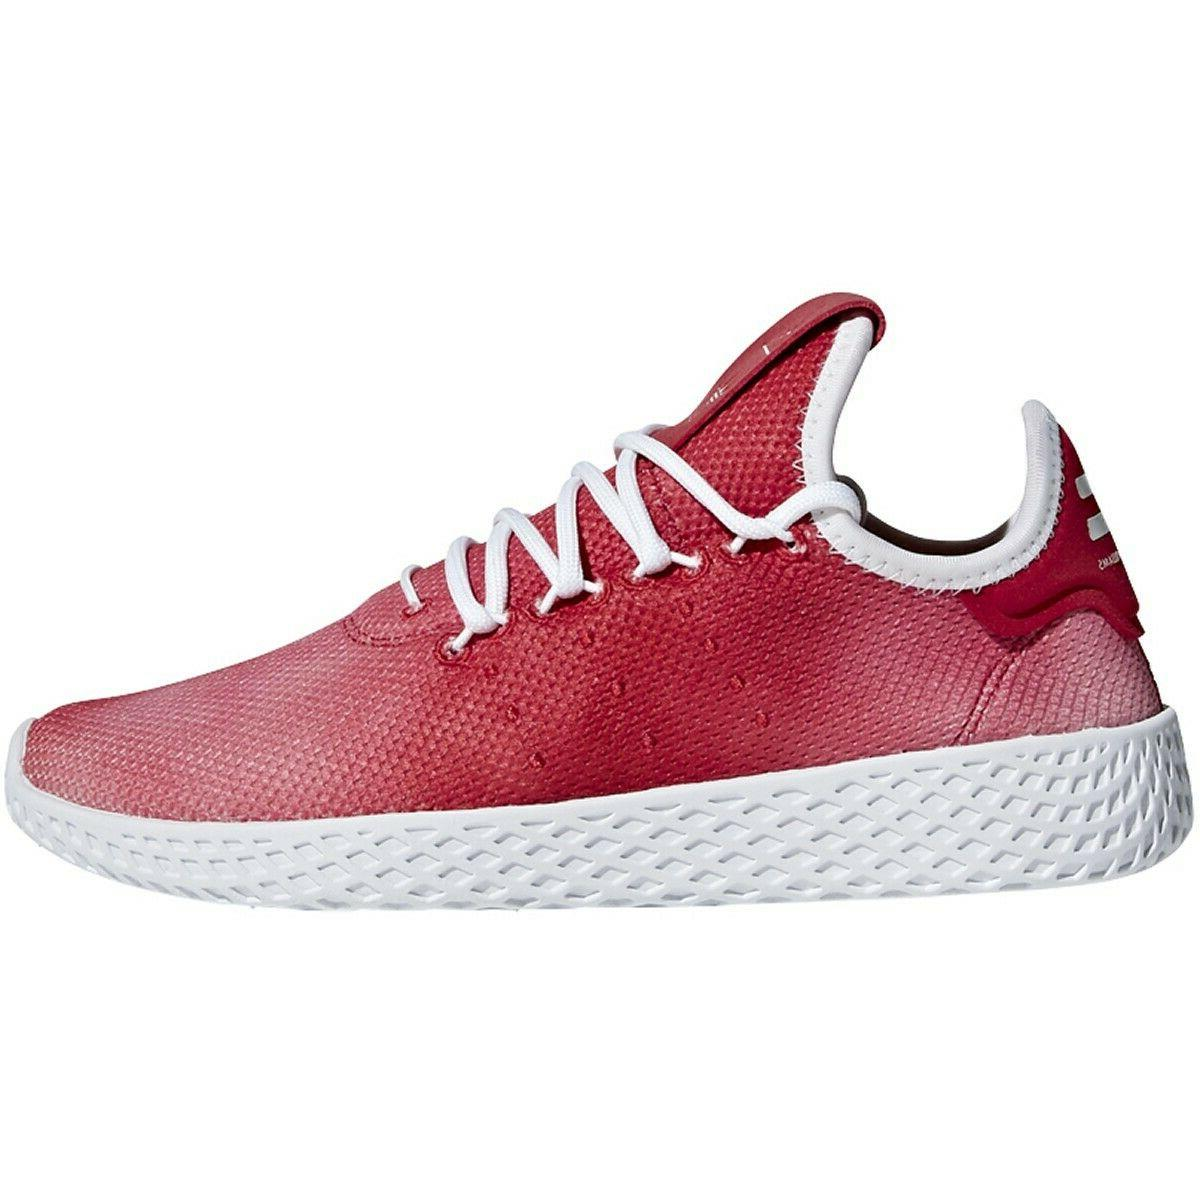 Adidas PW Tennis HU J Big Kids Shoes Scarlet/Footwear White